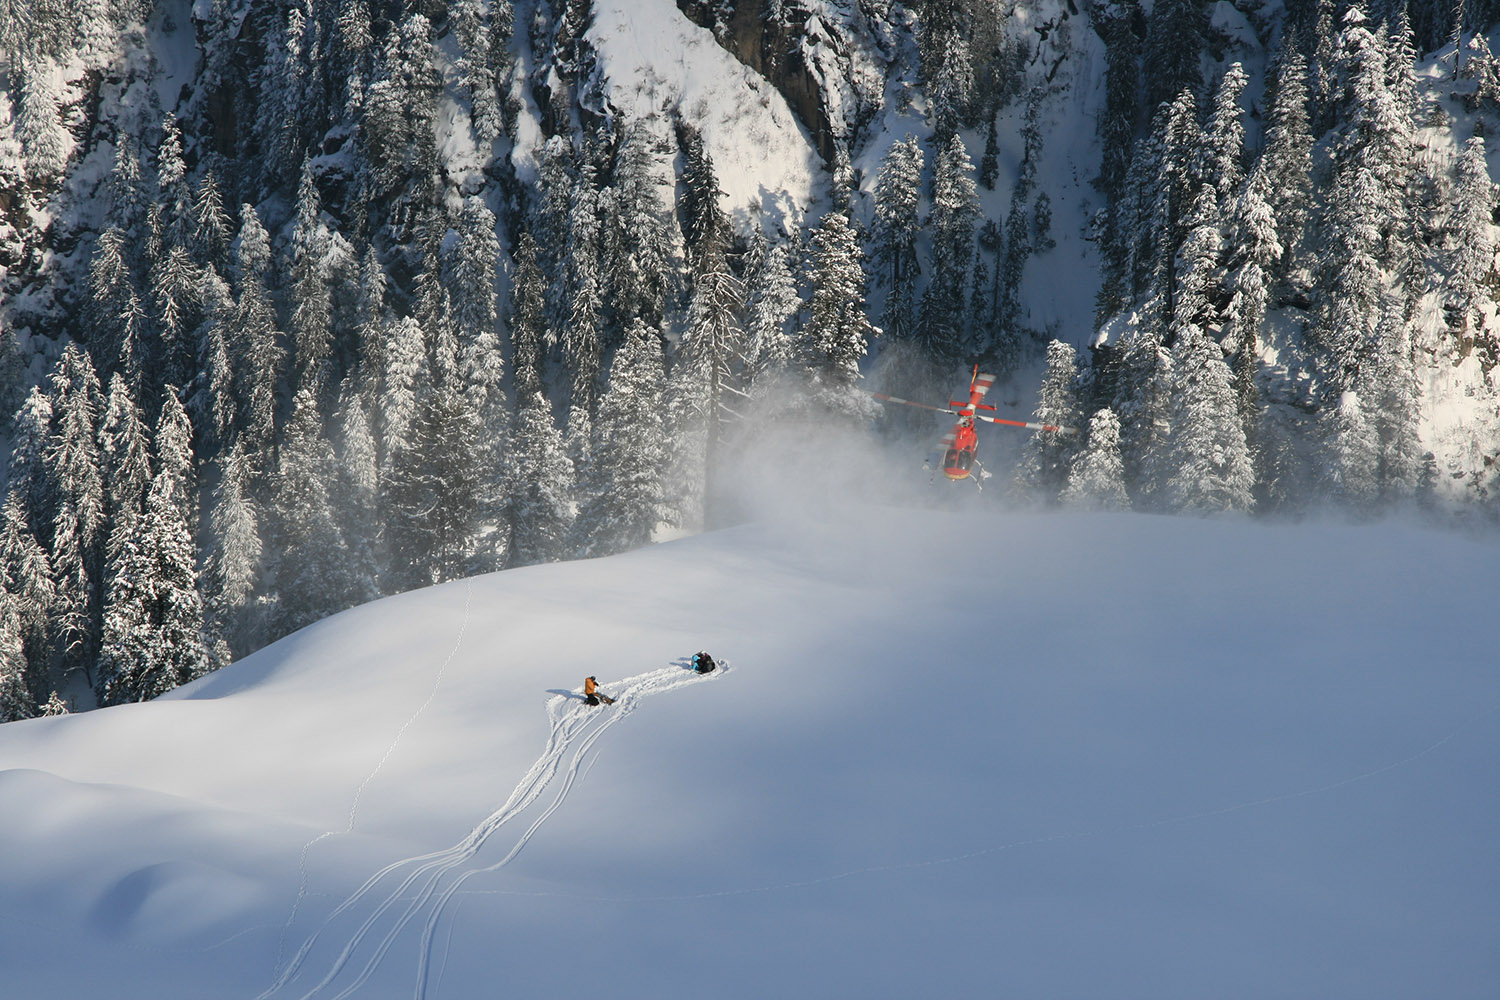 Heli Skiing Information (Safety)